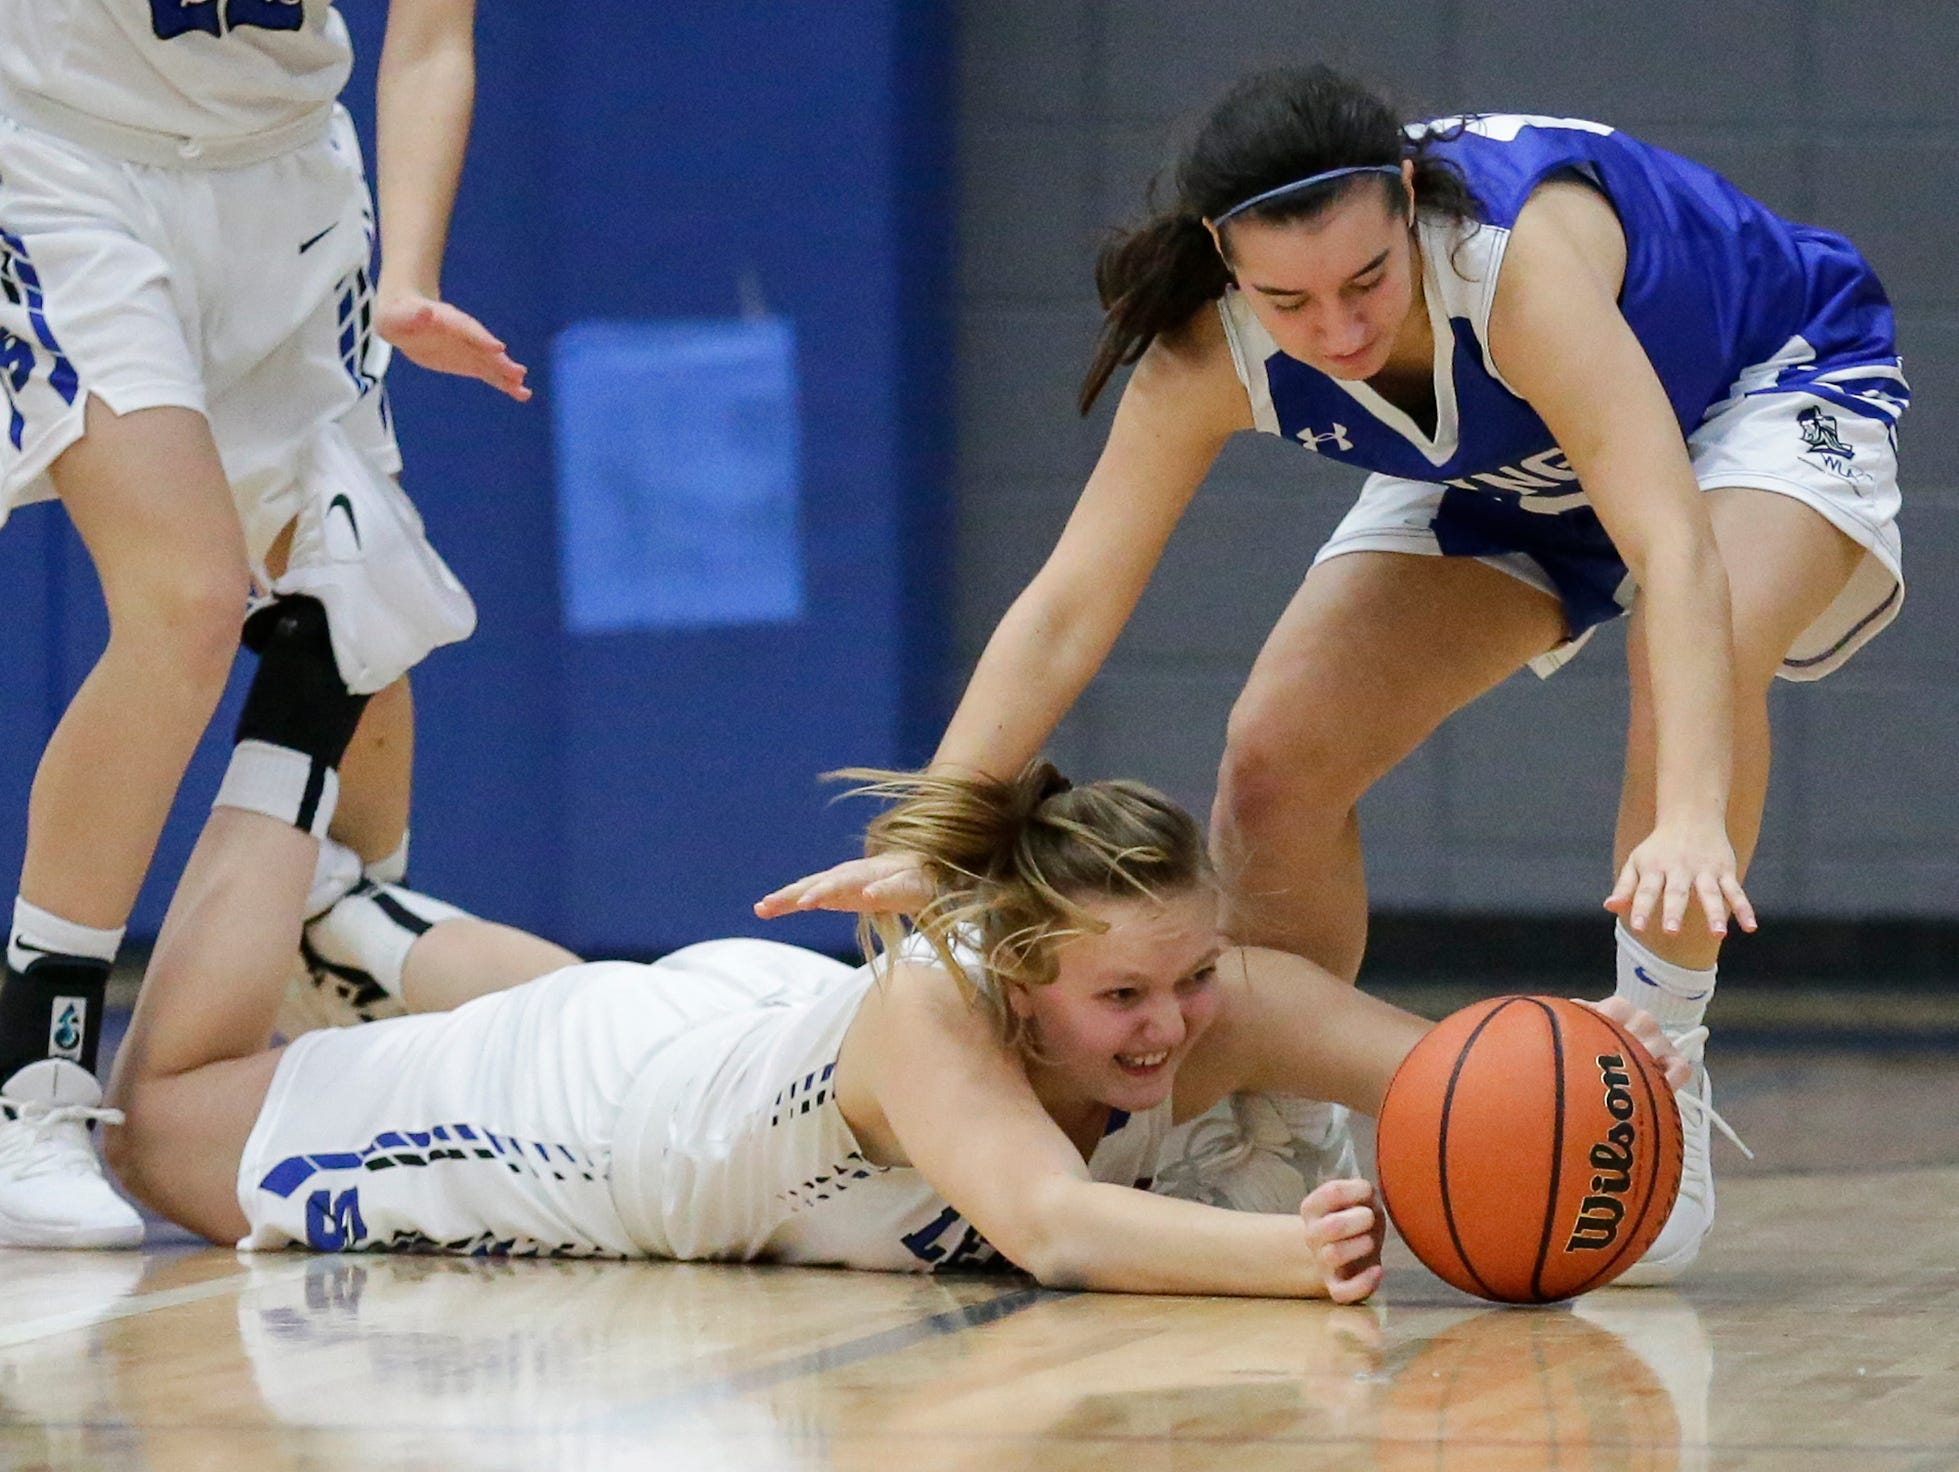 St. Mary's Springs Academy girls basketball's Brianna Freund and Winnebago Lutheran Academy's Katelyn Bonilla battle for a loose ball during their game Tuesday, December 18, 2018 in Fond du Lac. Winnebago Lutheran Academy won the game 58-54. Doug Raflik/USA TODAY NETWORK-Wisconsin